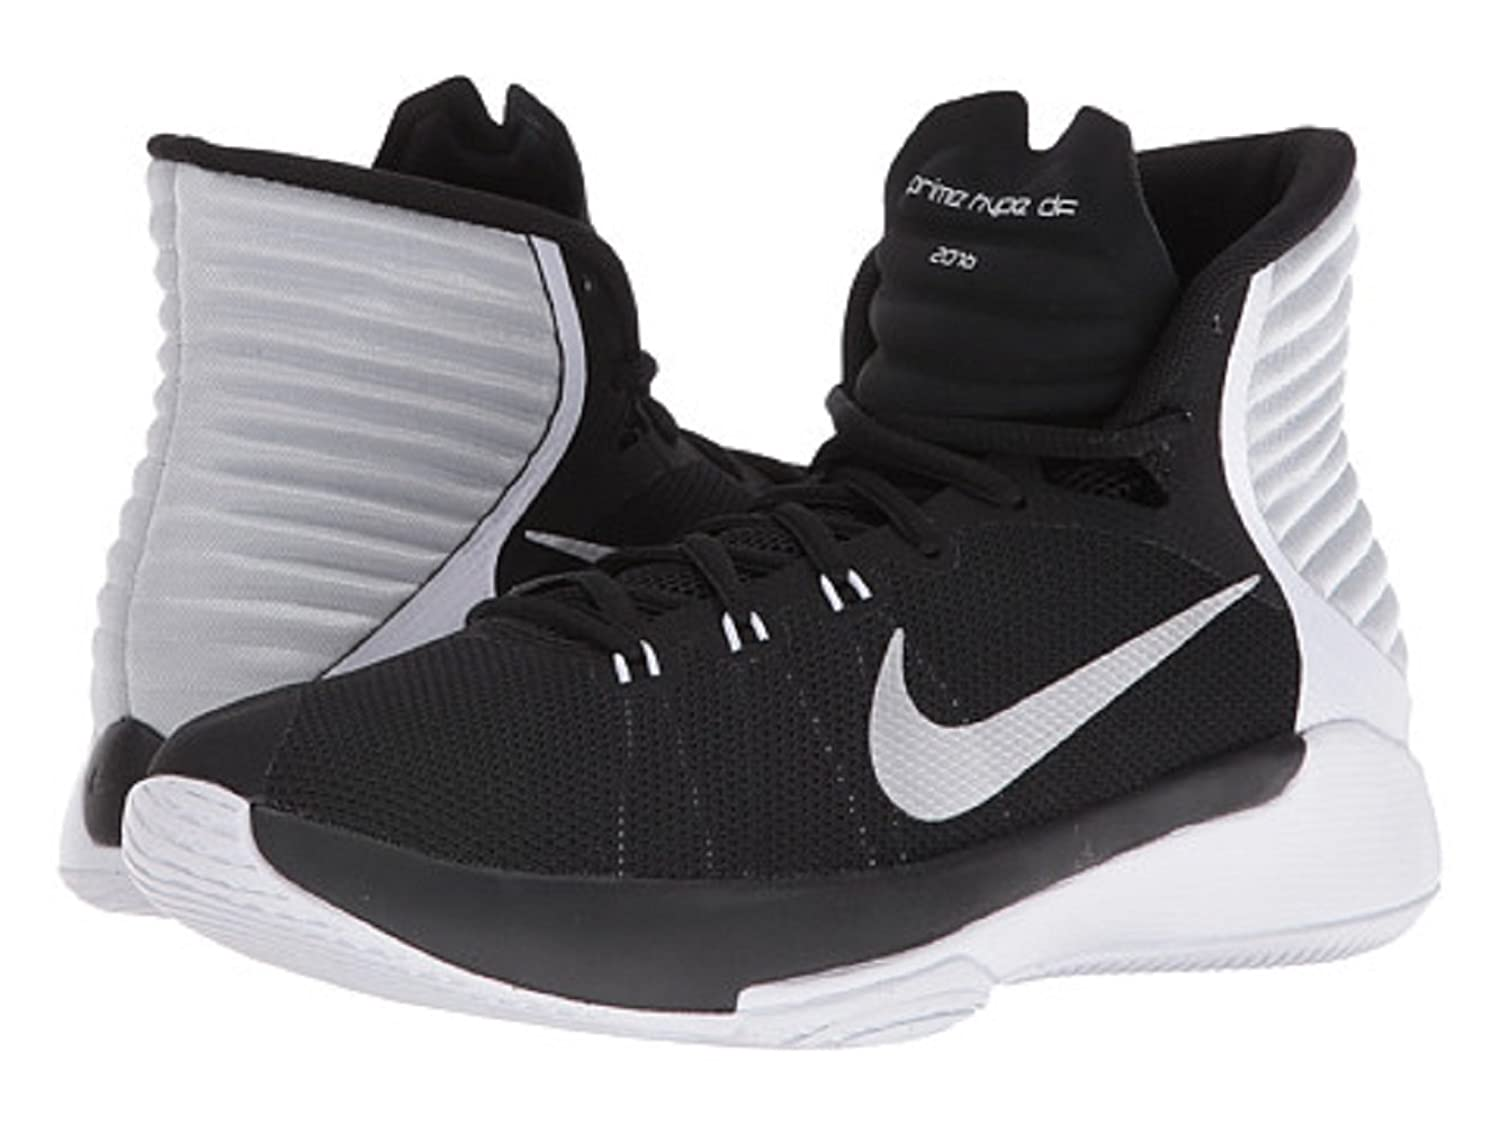 nike shoes trainer 5.0